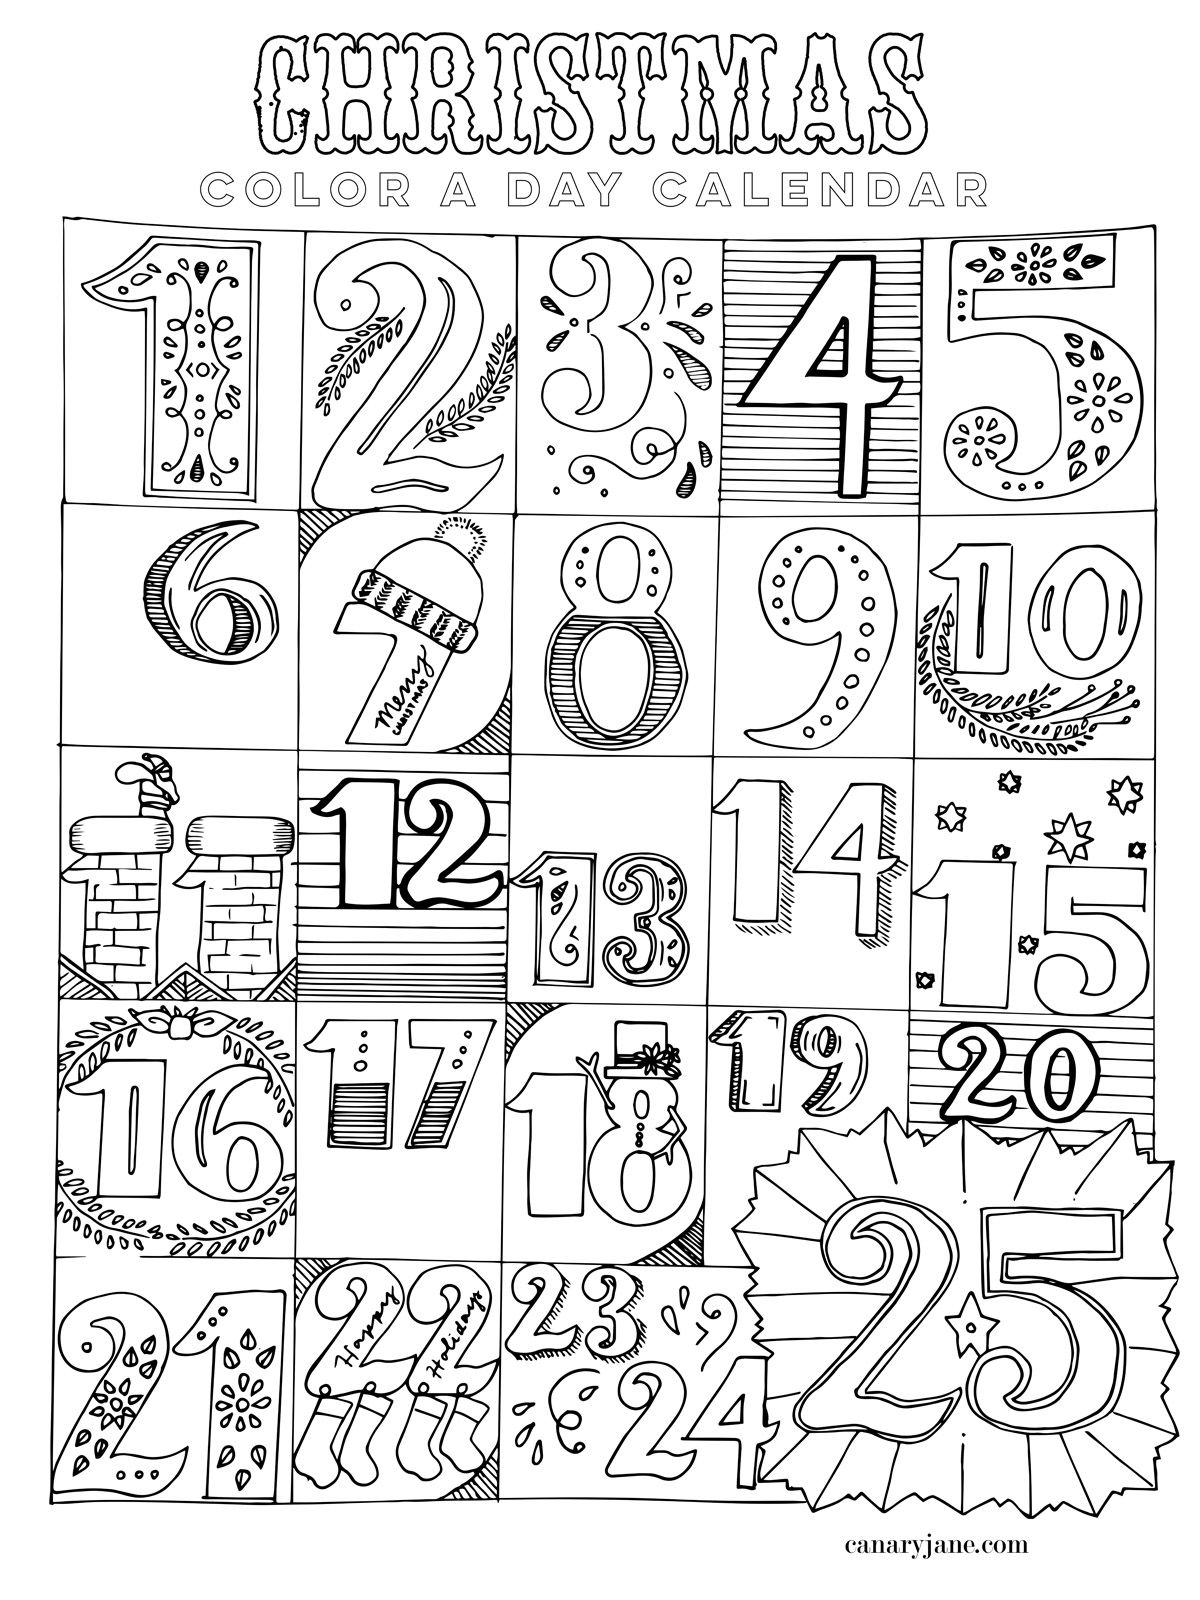 Joe Blog 25 Days Of Christmas Coloring Pages